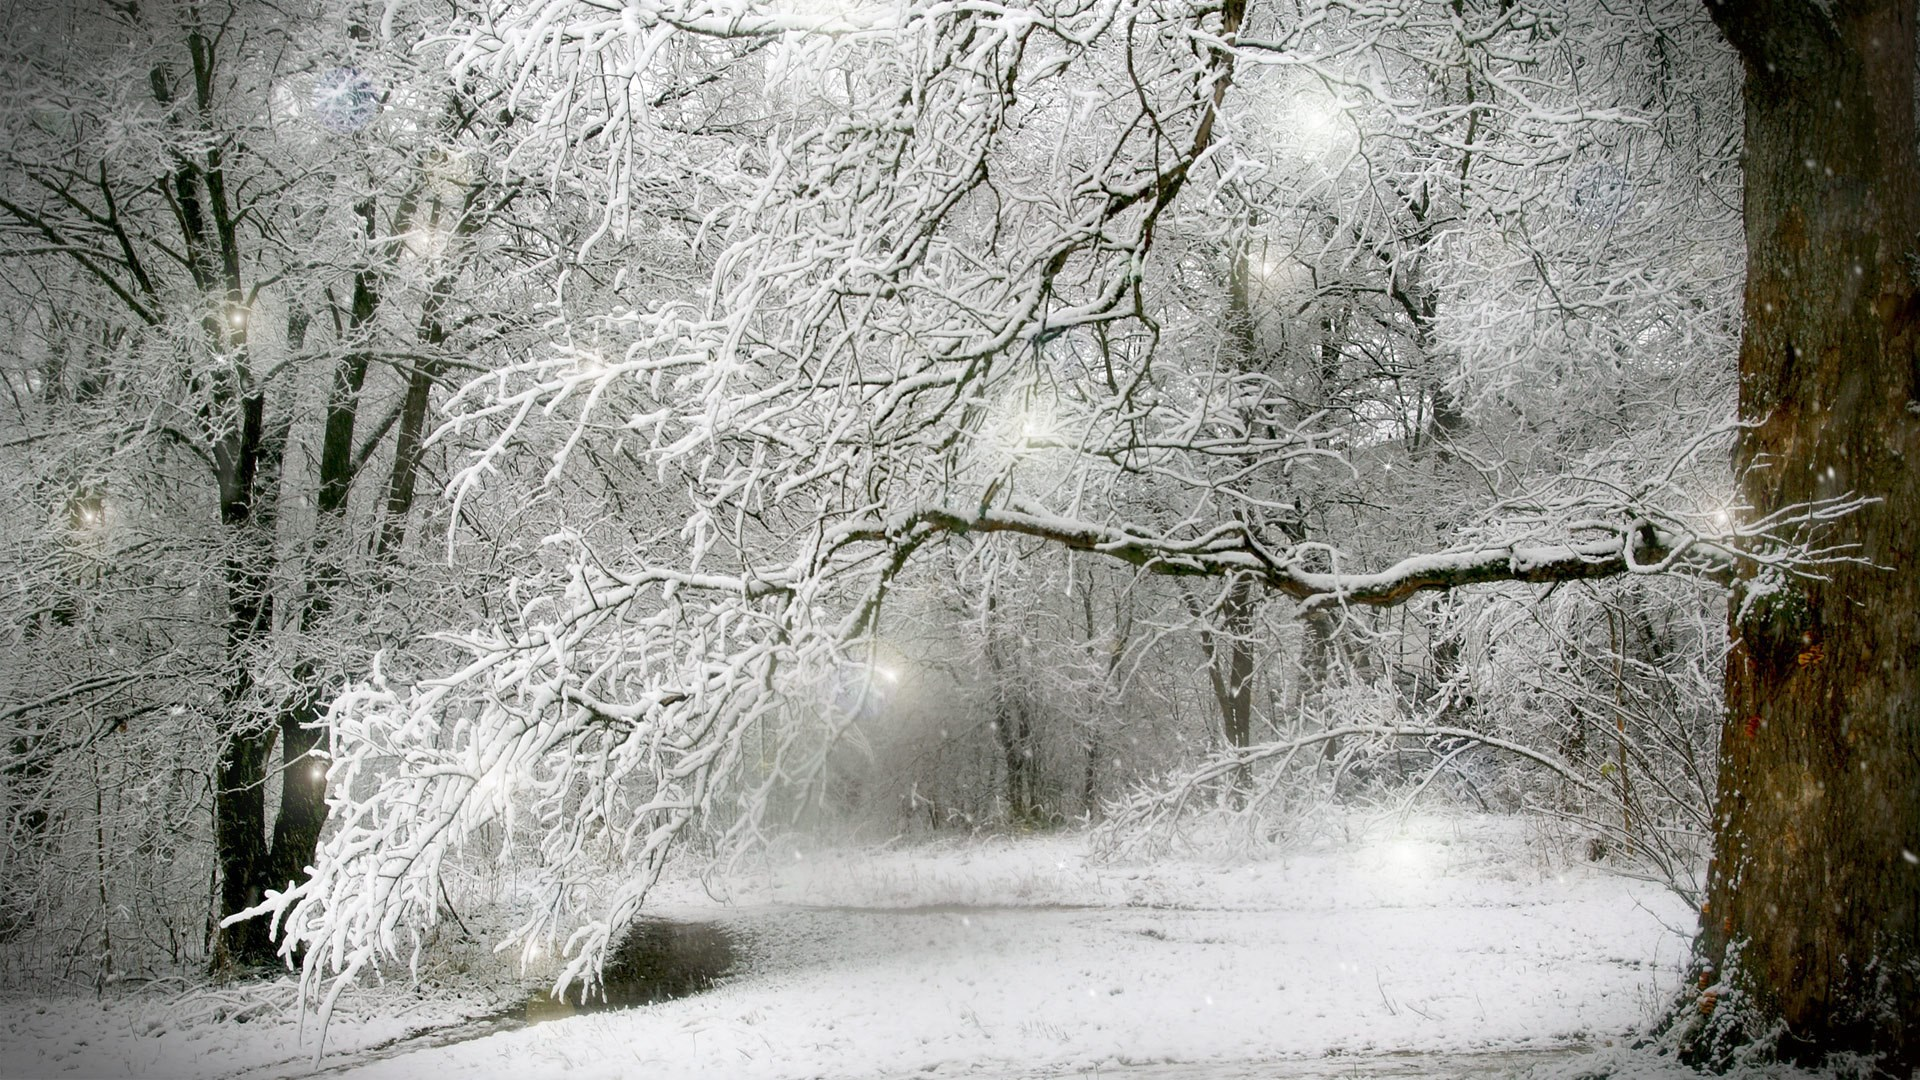 1920-x-1080-px-winter-snow-scenes-Full-HD-Pictures-by-Lawton-Kingsman-wallpaper-wp360740